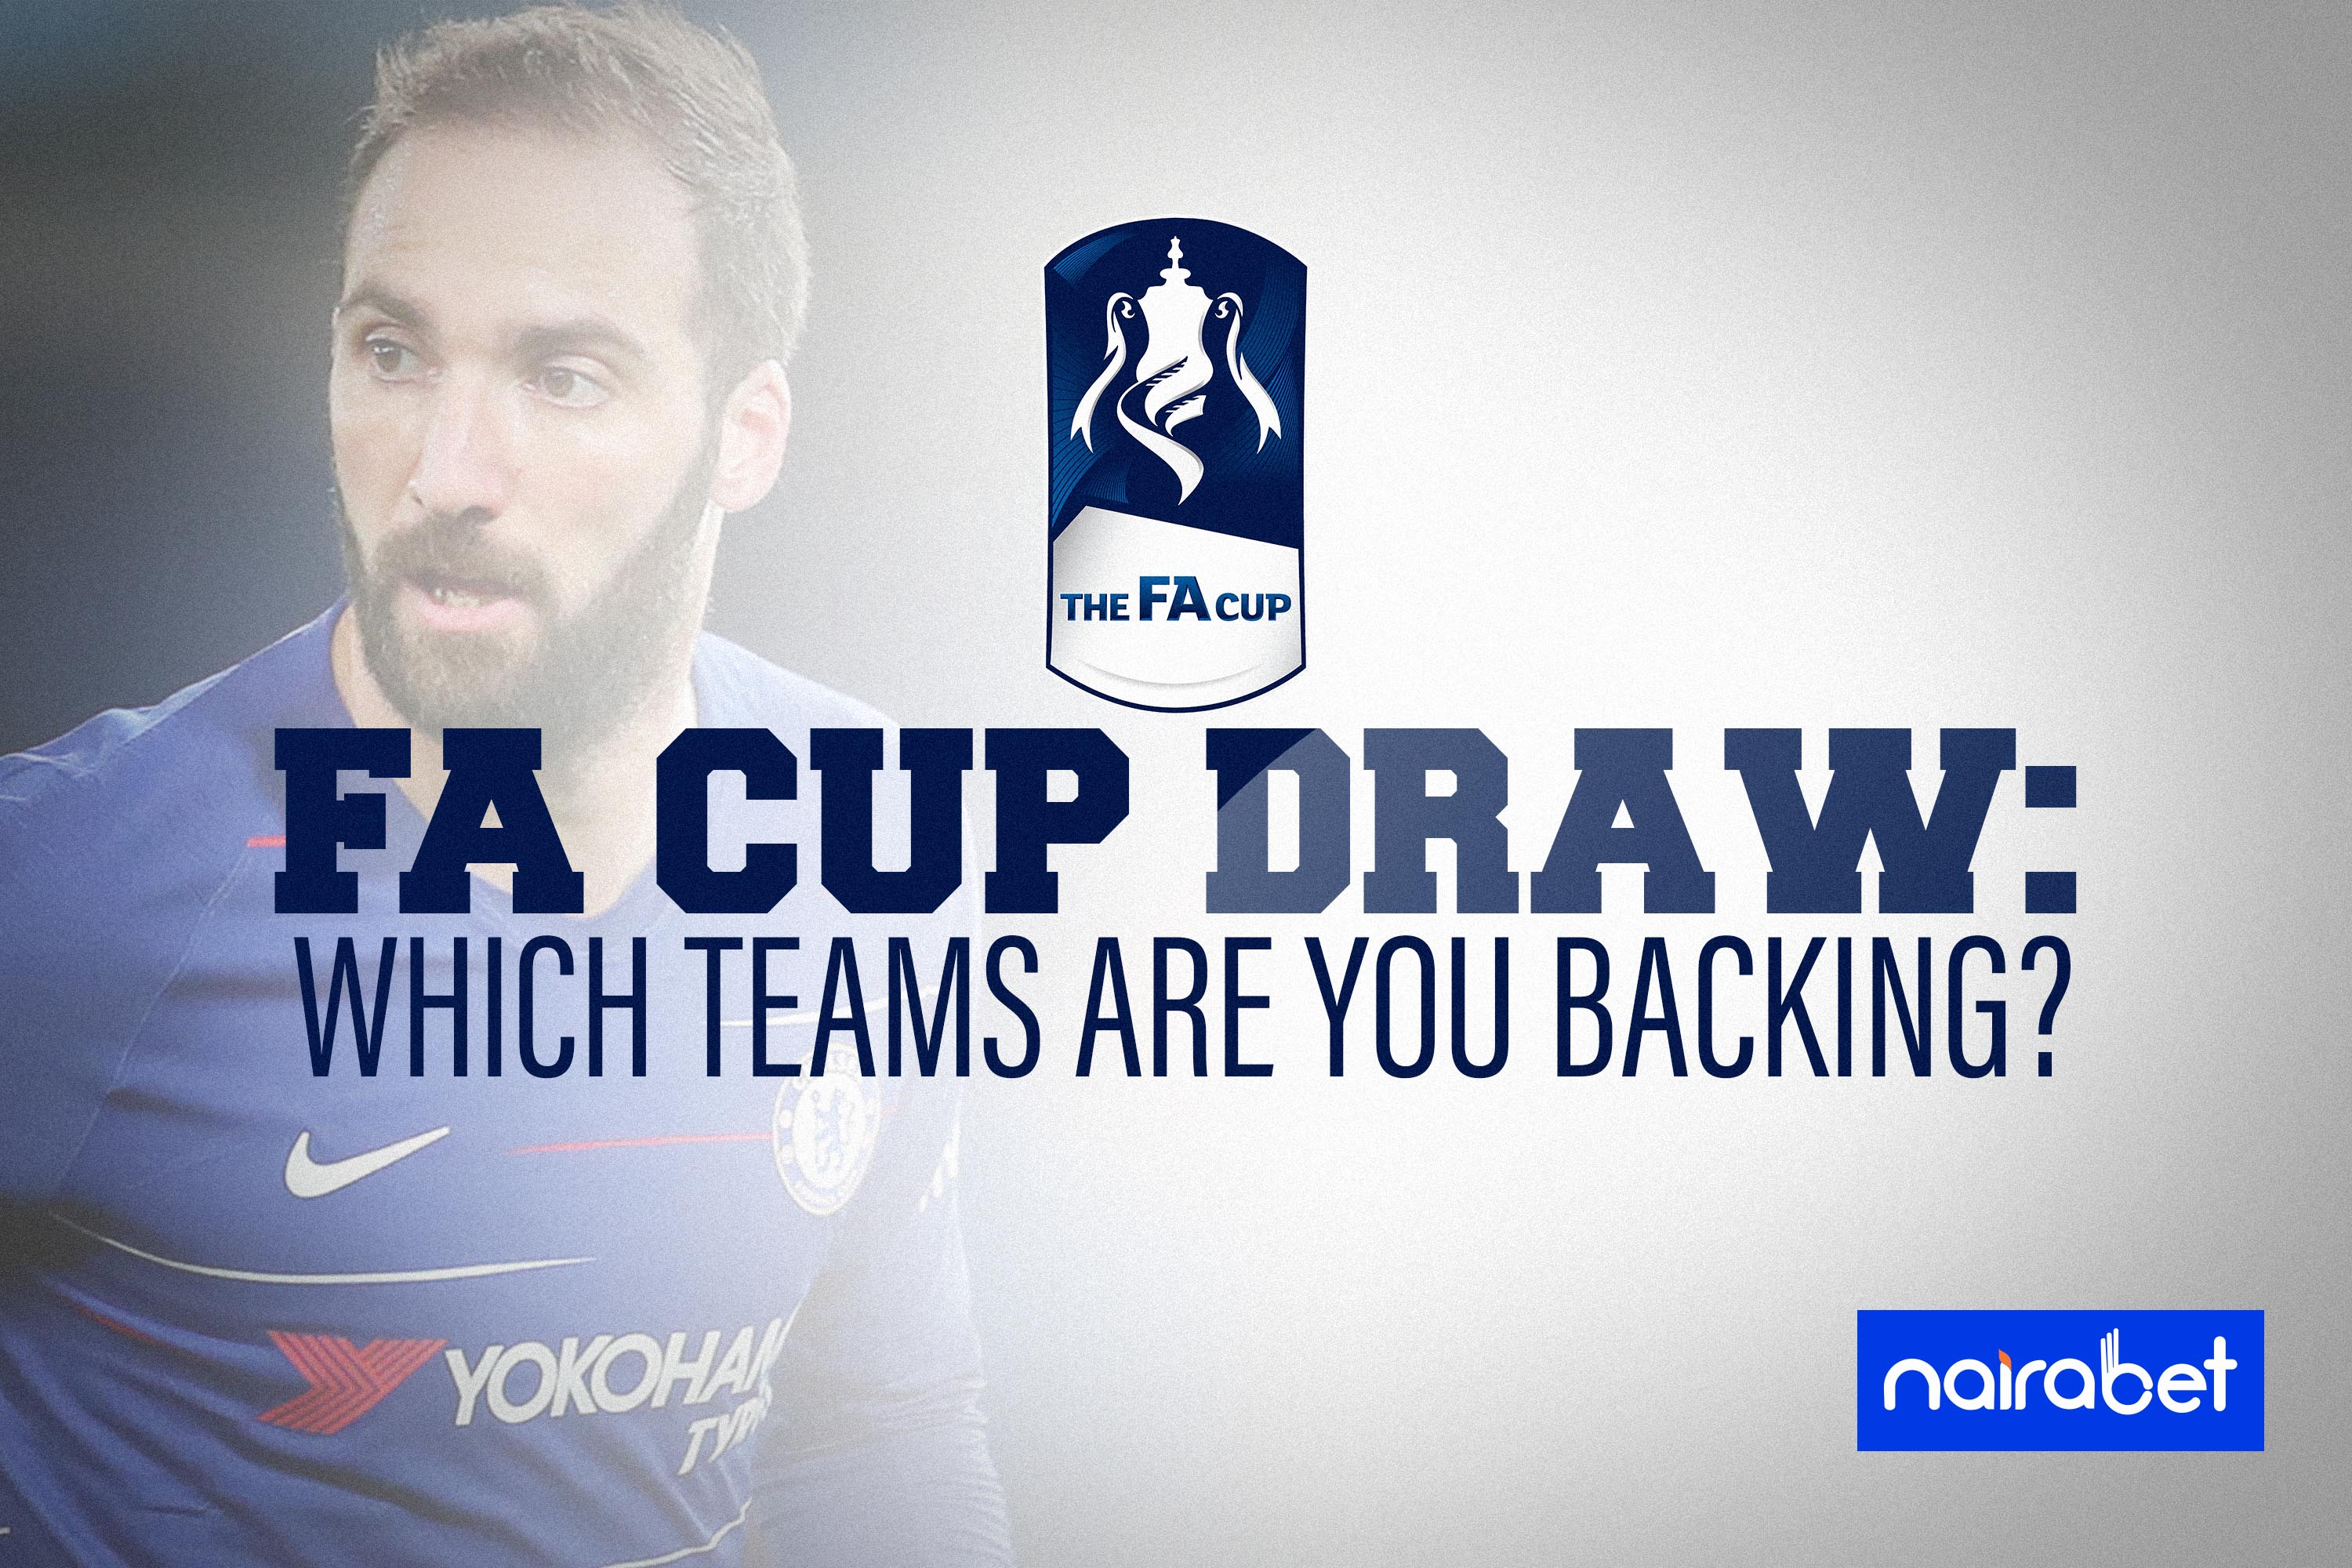 FA Cup Draw backing